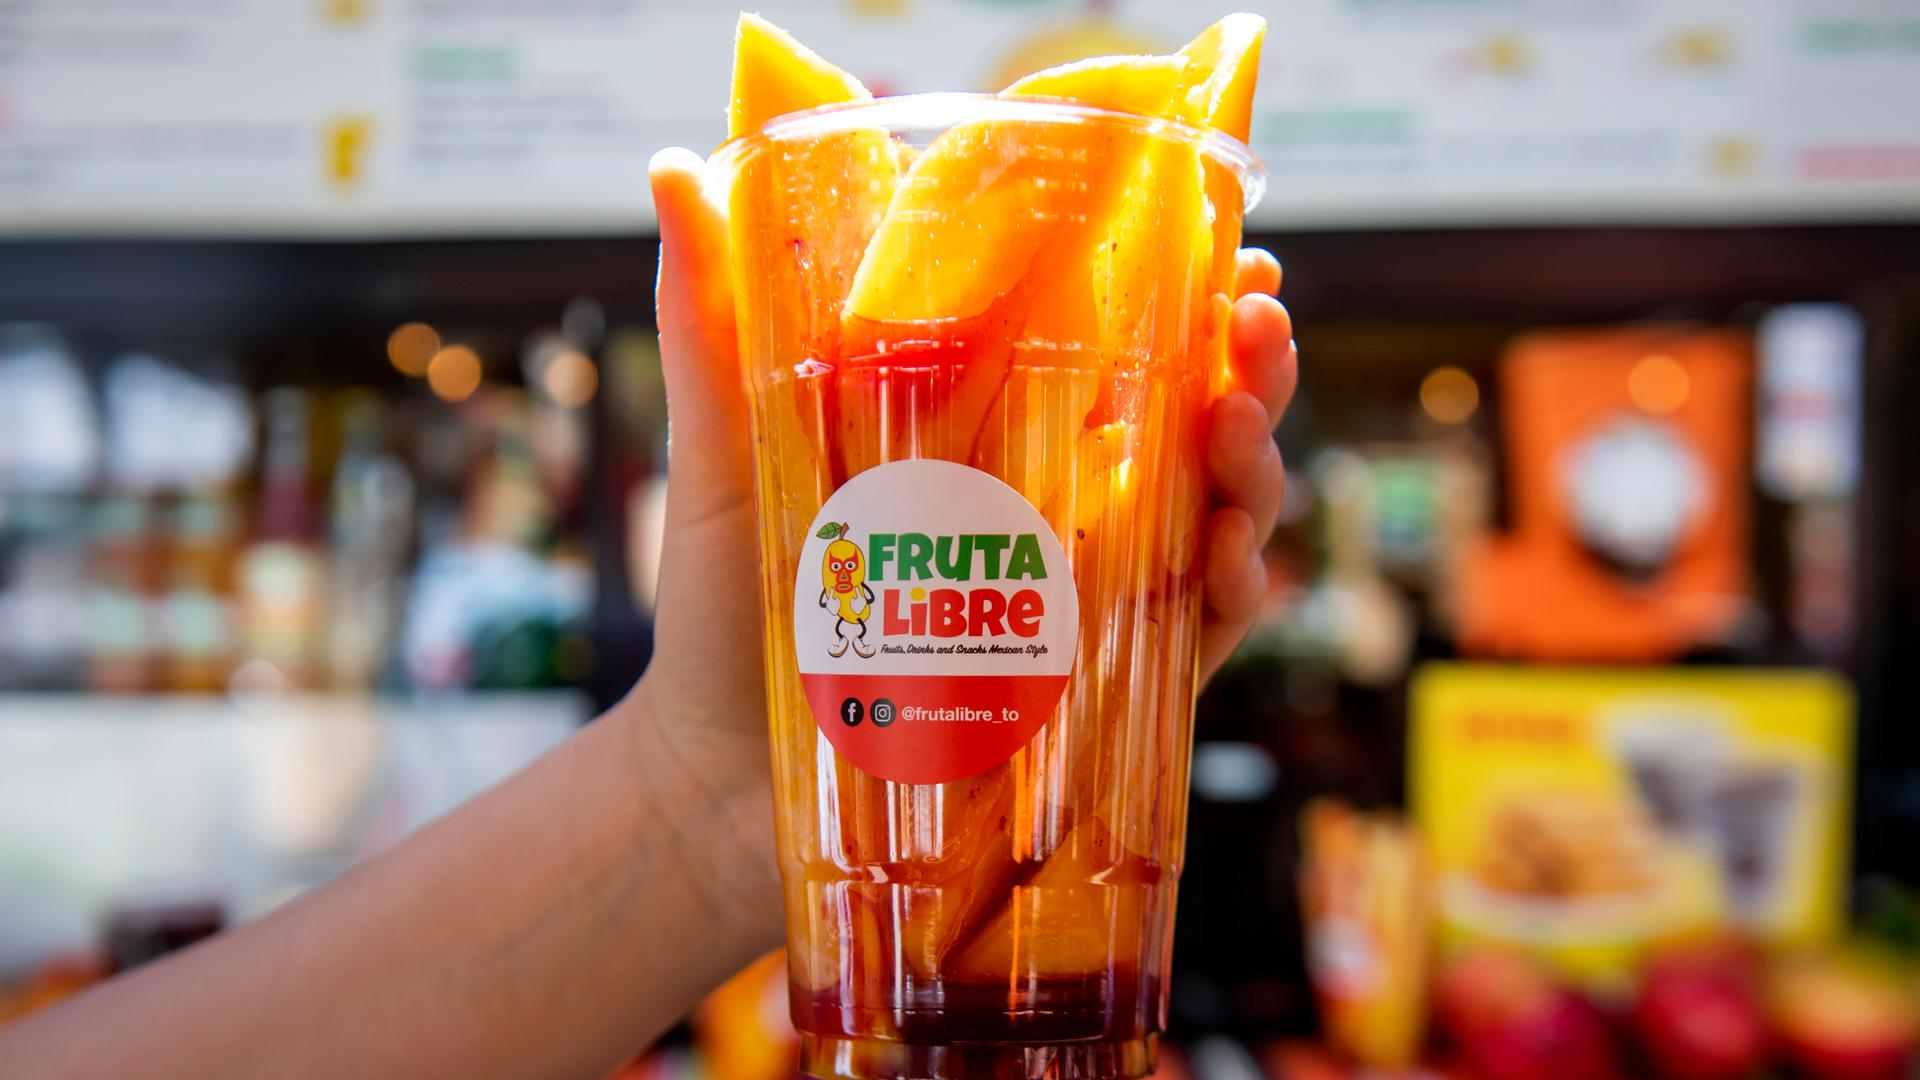 The best Toronto food markets   Sliced mango in a cup from Fruta Libre at the World Food Market